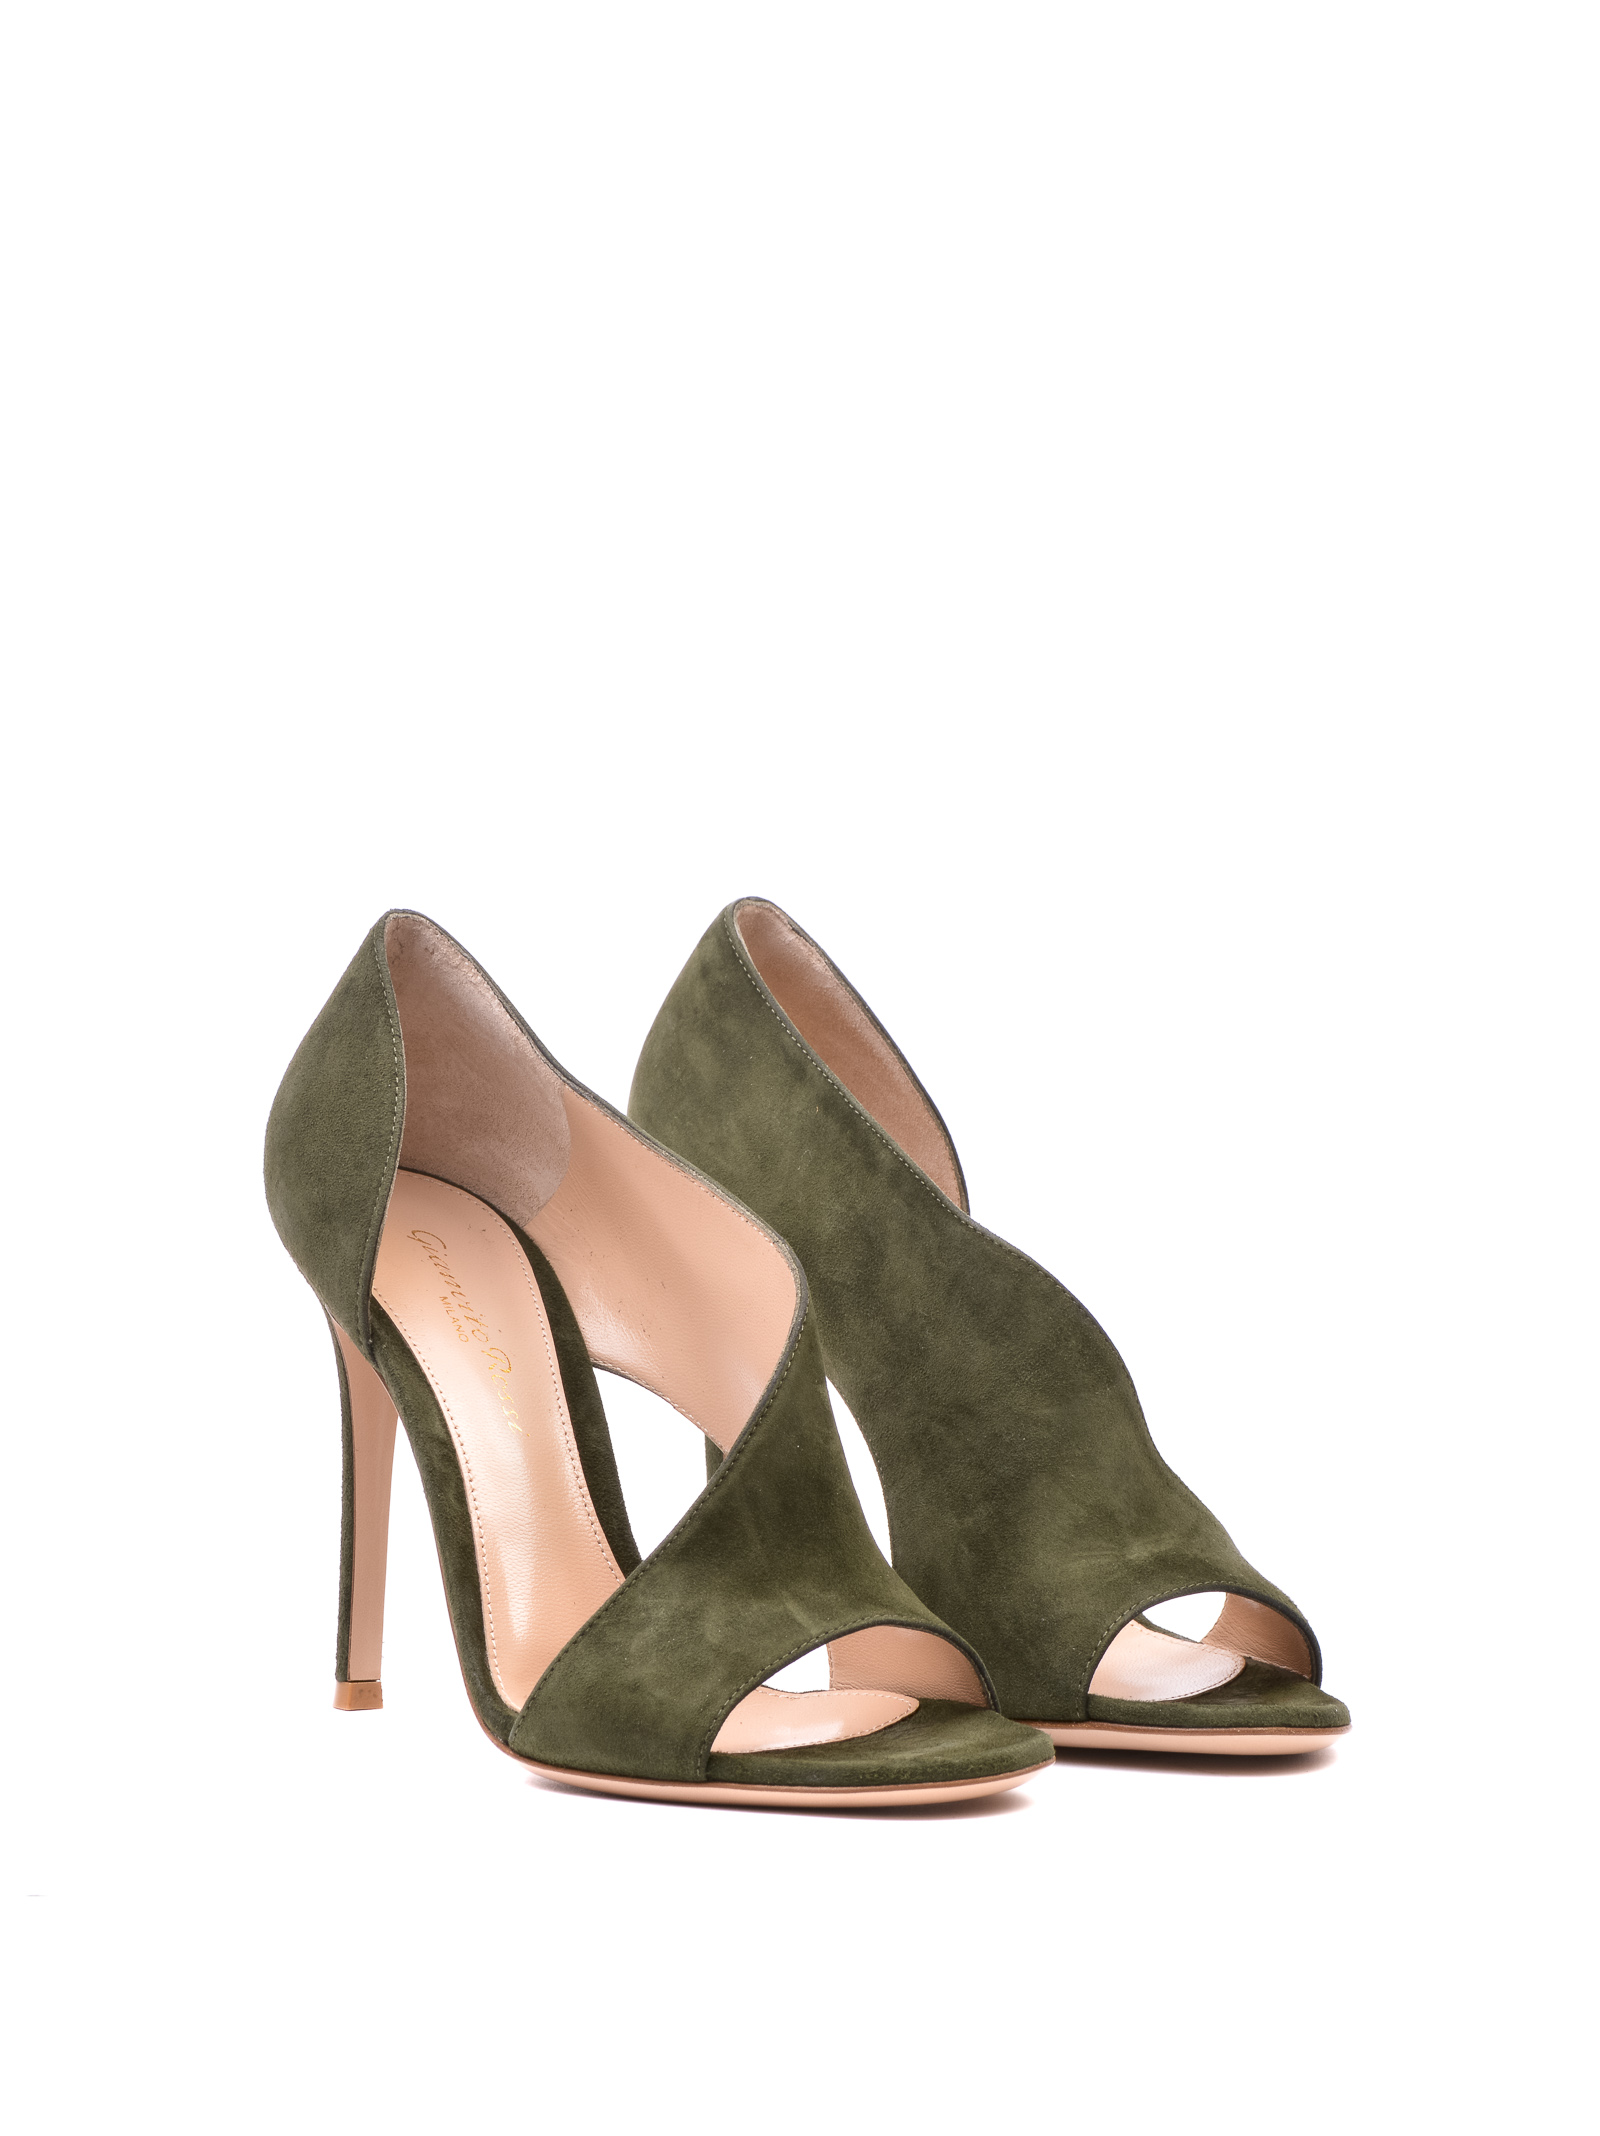 Gianvito Rossi Gianvito Demi Sandals